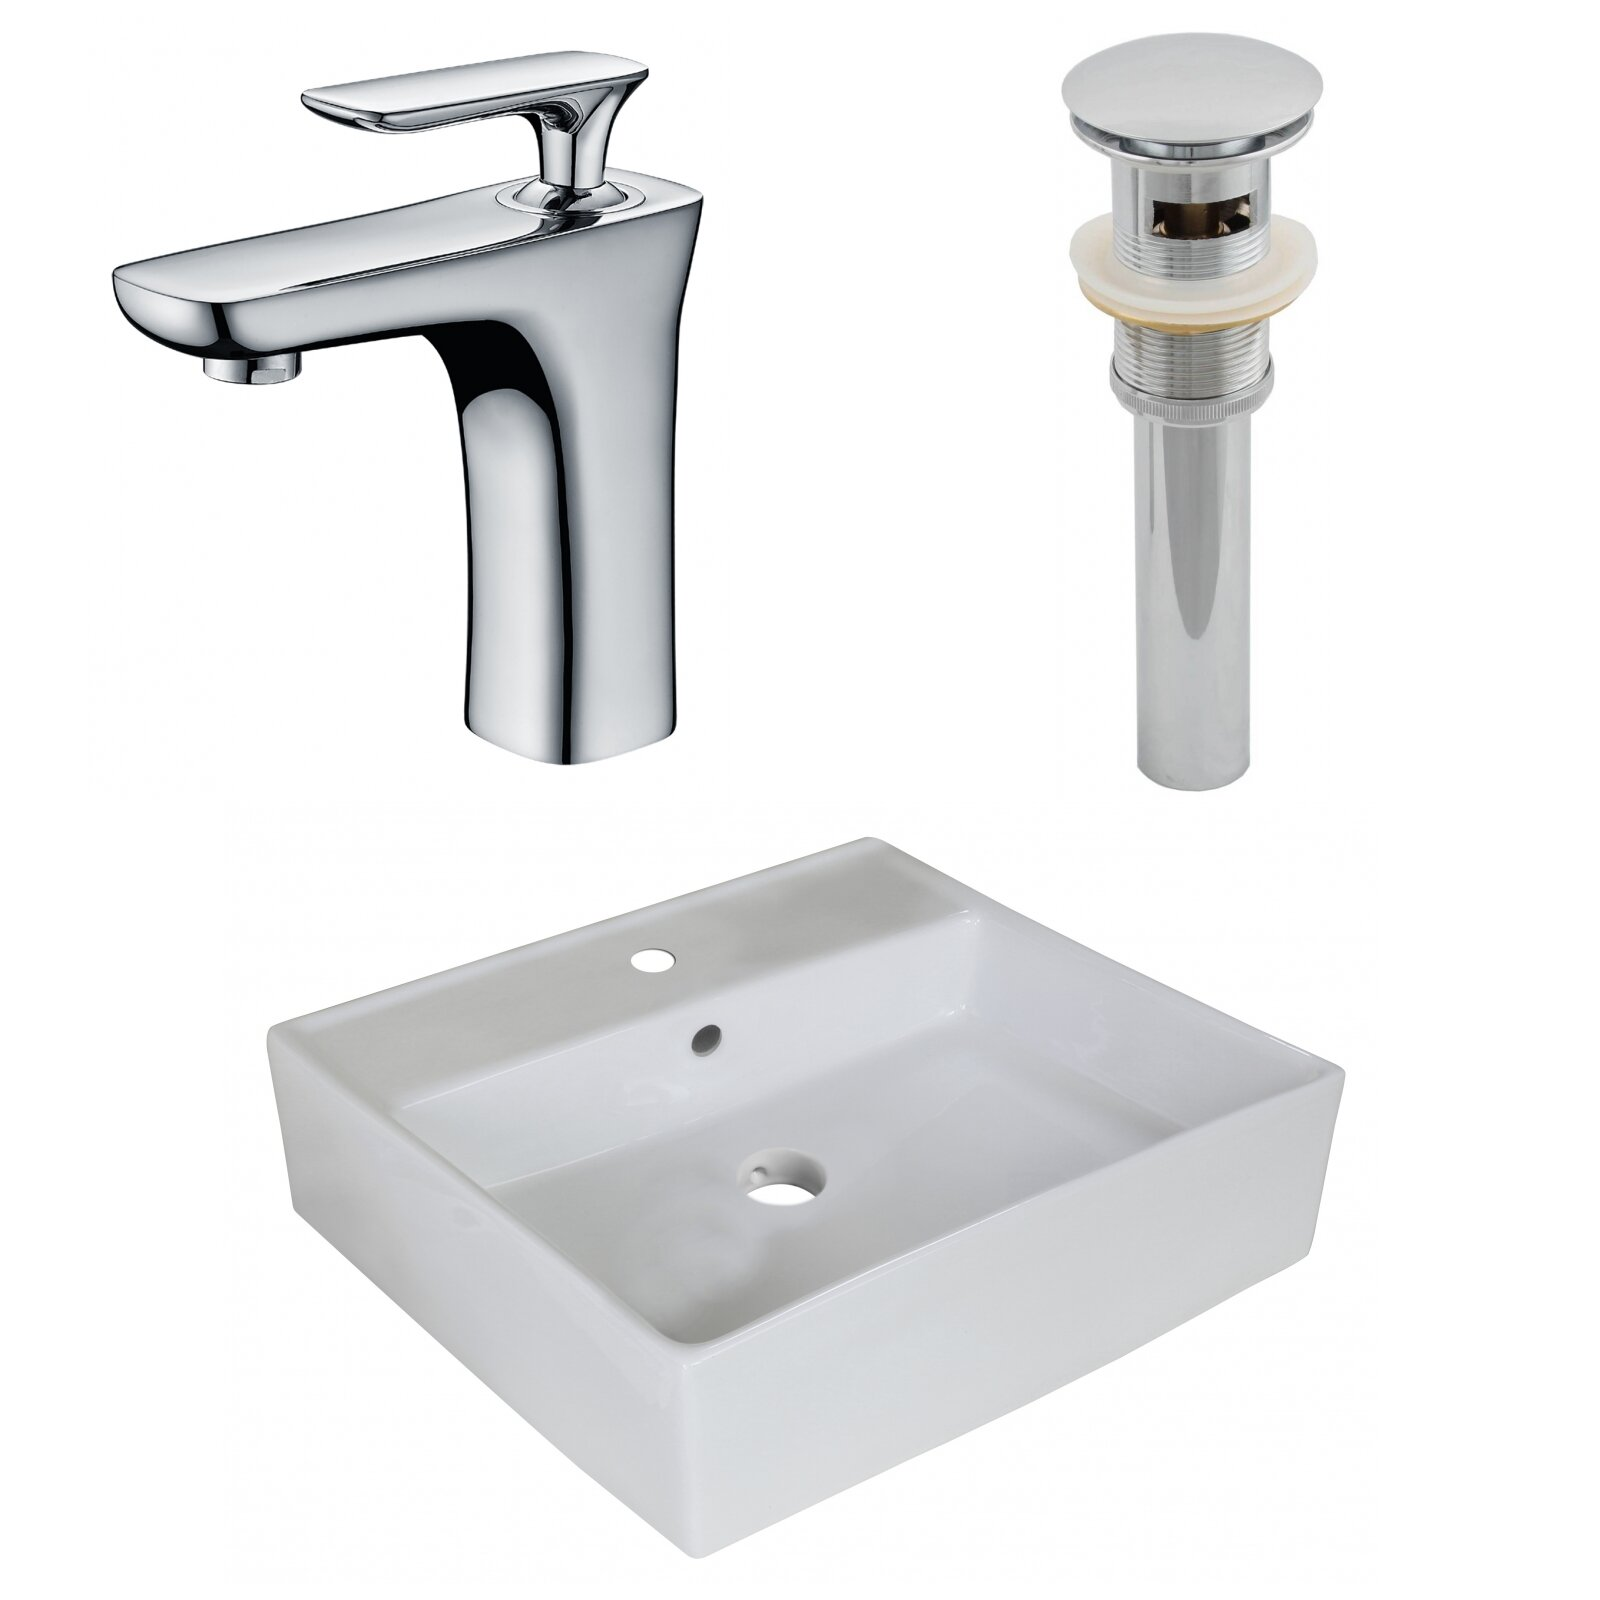 Details About Above Counter Ceramic Square Undermount Bathroom Sink With Faucet And Overflow